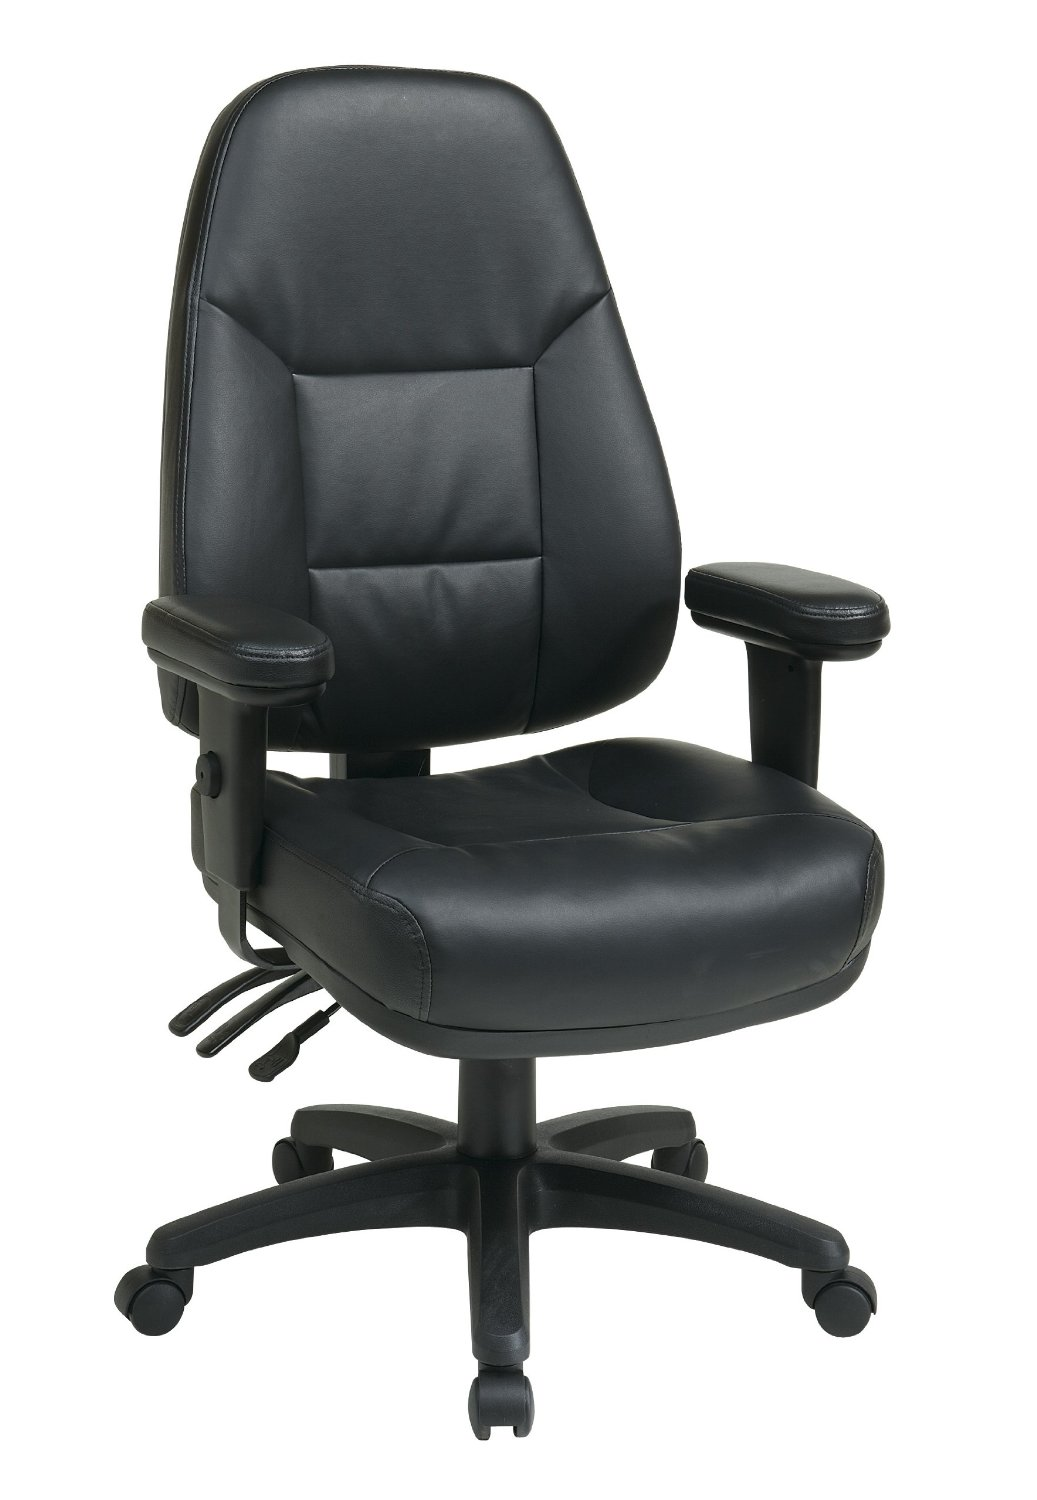 executive office chairs office star worksmart professional dual